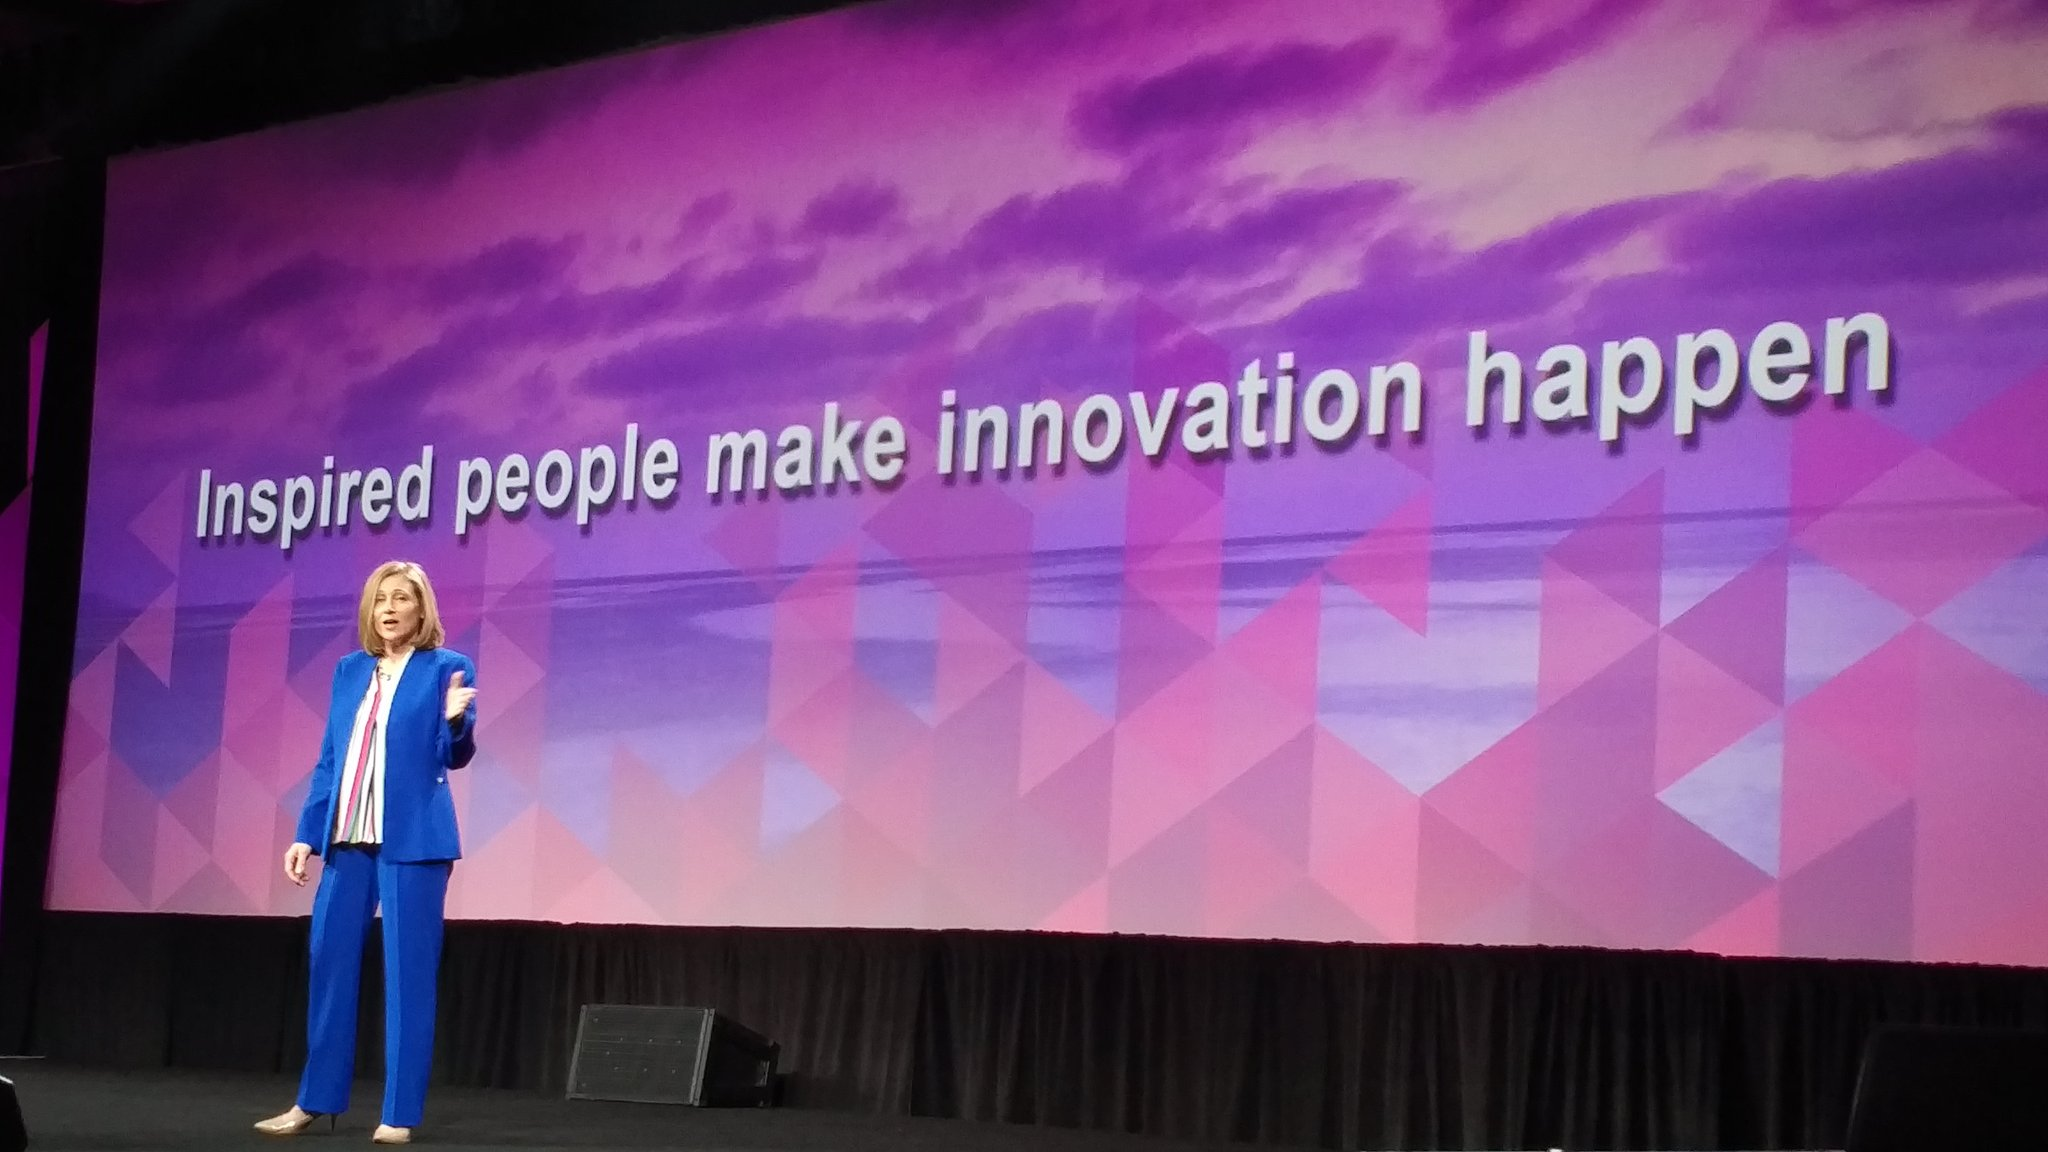 .@erin_siemens - over 1000 inspired people at #ADPMOTM to make #innovation happen. https://t.co/bEc2Iu5WIK